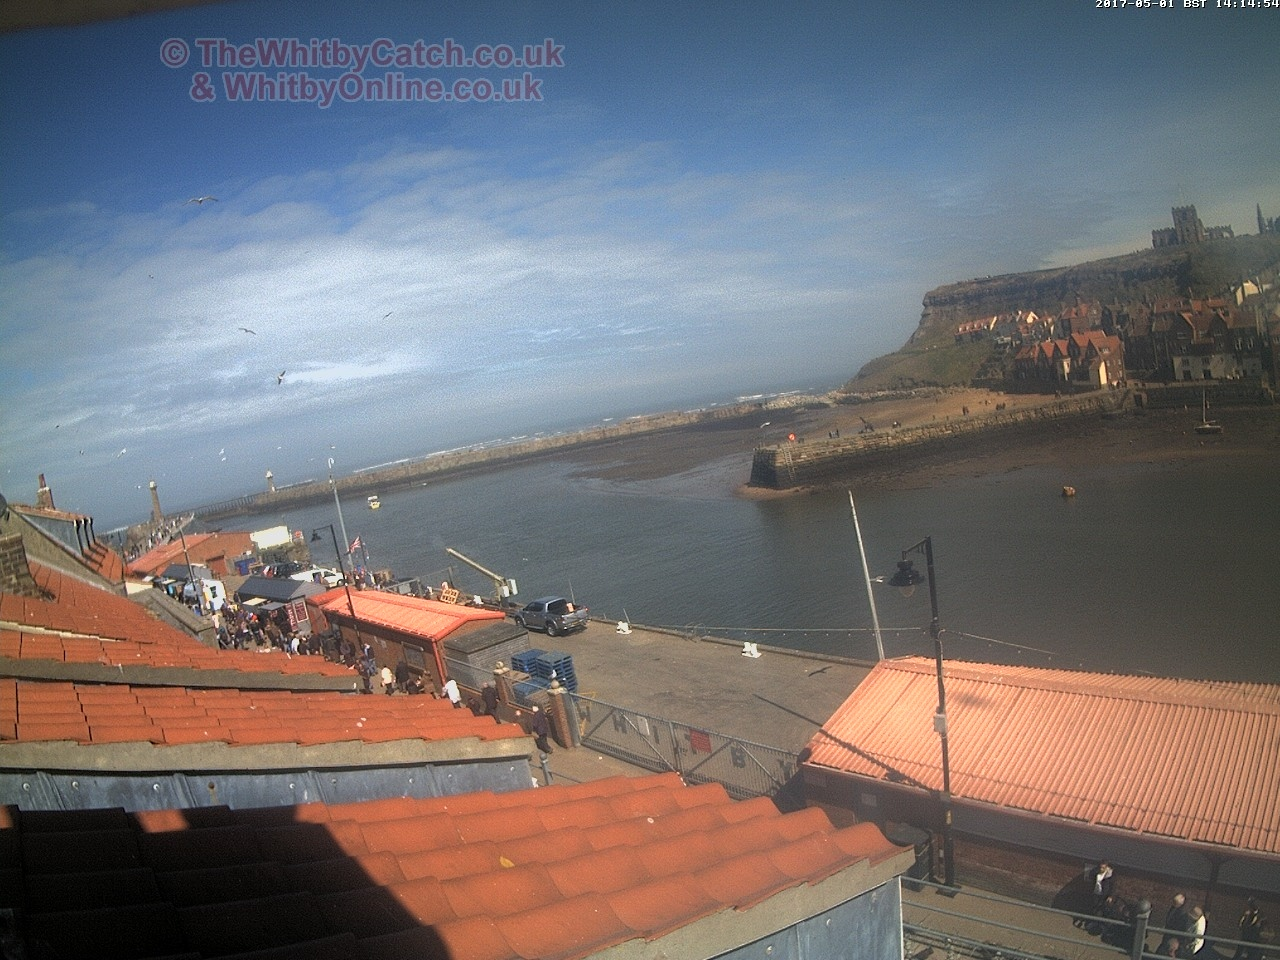 Whitby Mon 1st May 2017 14:15.